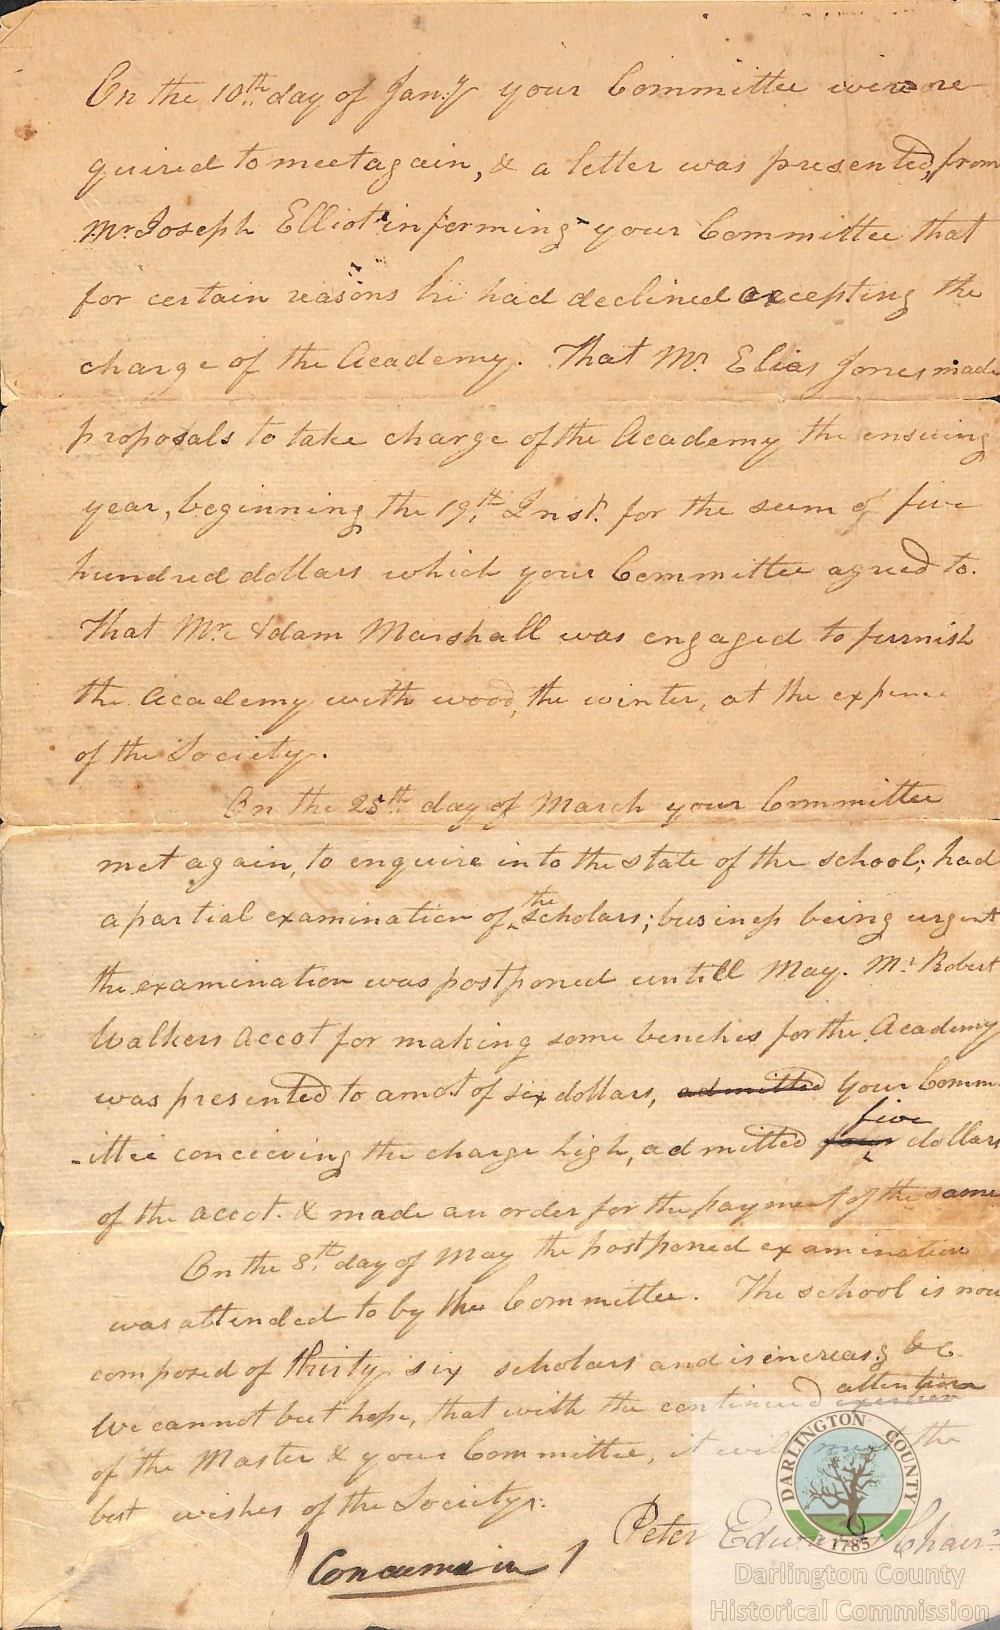 st-davids-society-repot-of-standing-committee-1805-page-4_marked